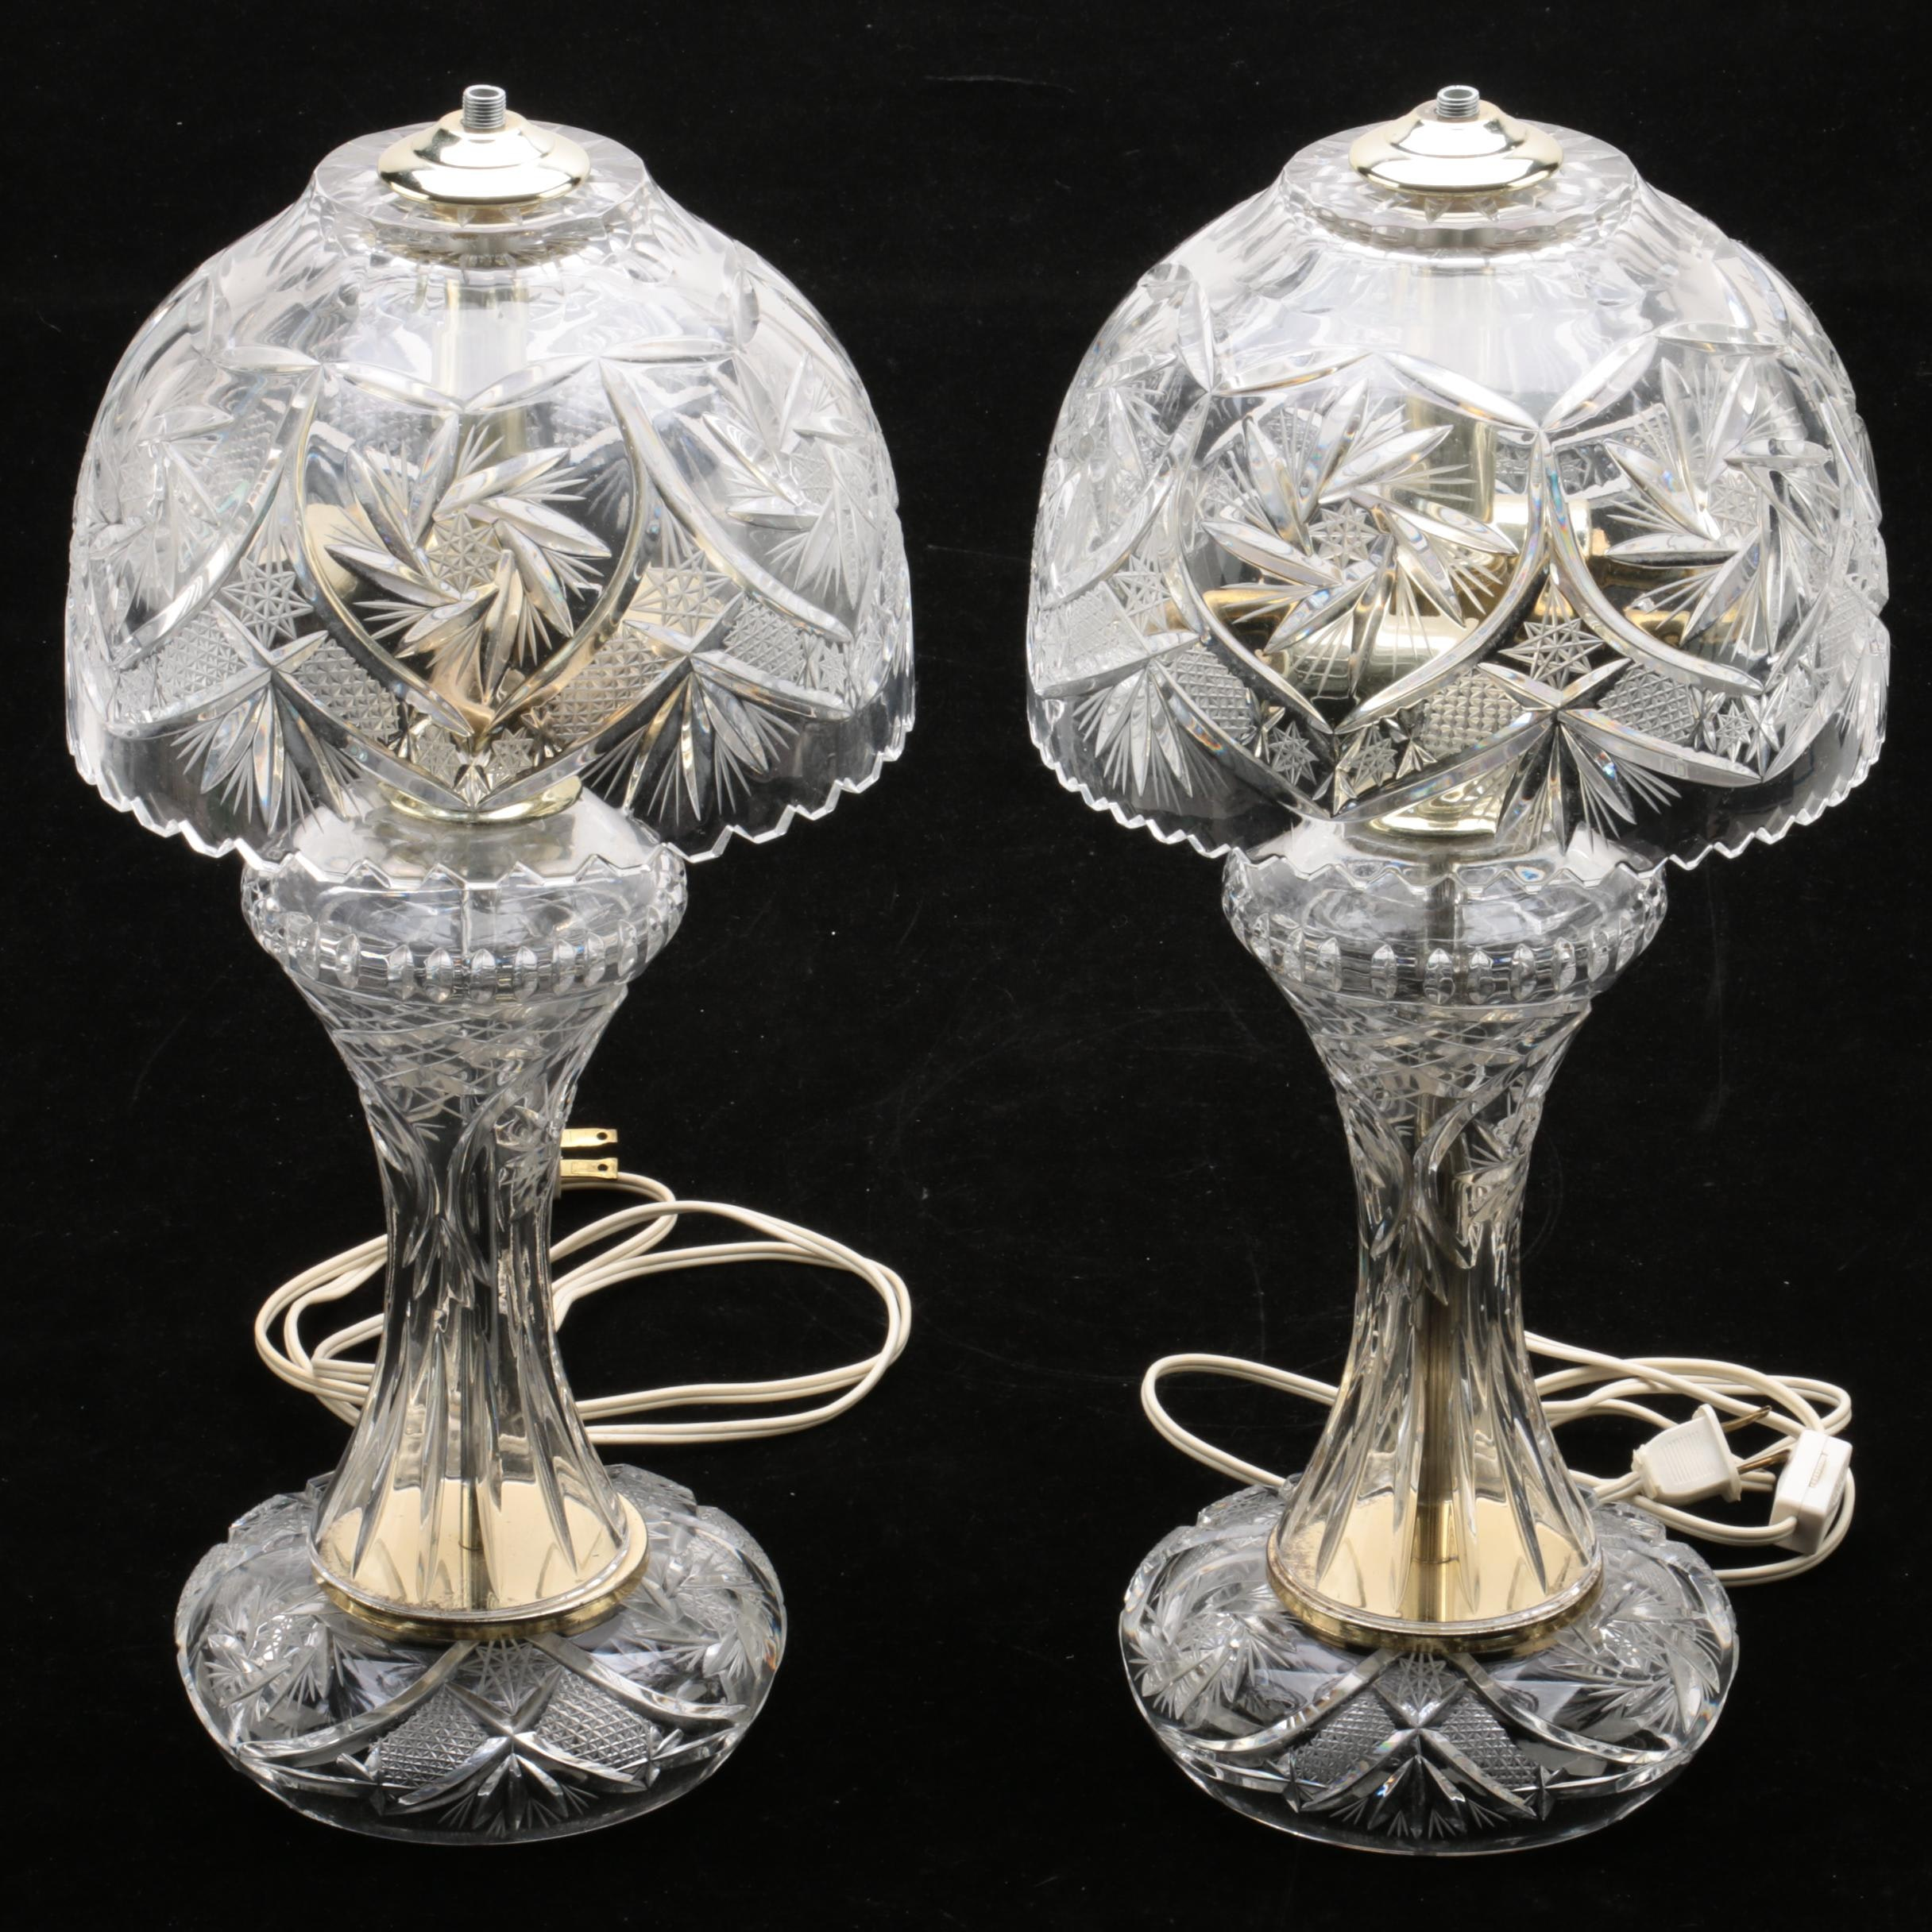 Vintage Cut Crystal Lamps